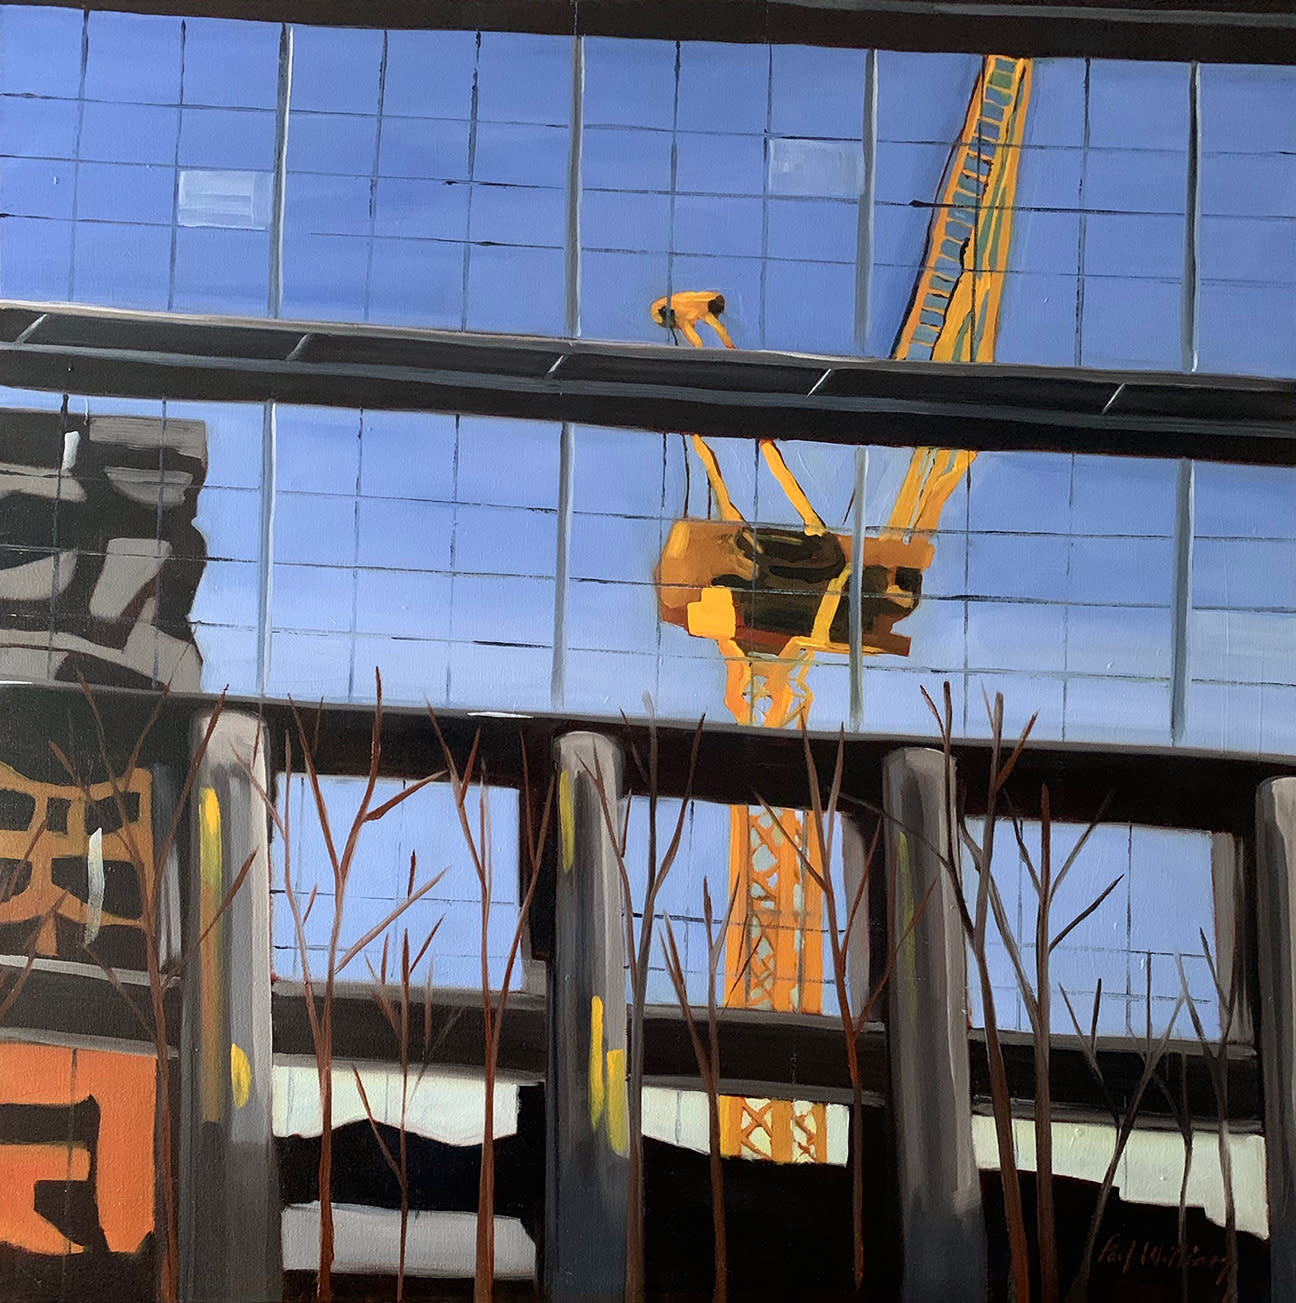 Loneliness of a tower crane driver by paul william artist n2zeph